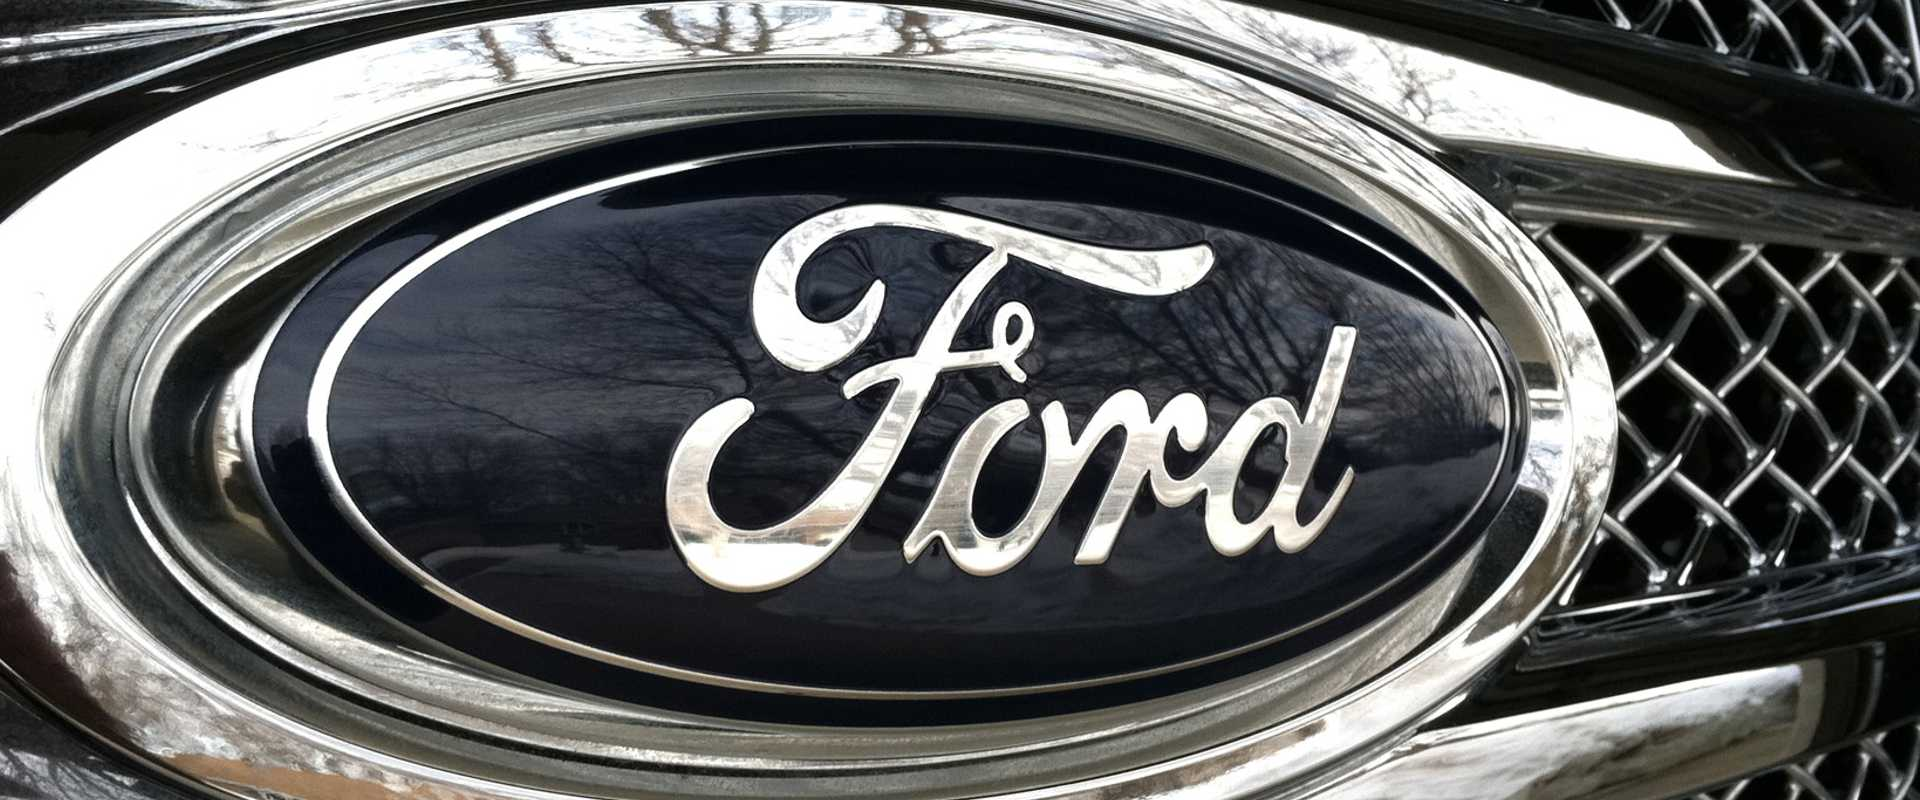 VIDEO: Ford vam želi sretan Dan zaljubljenih